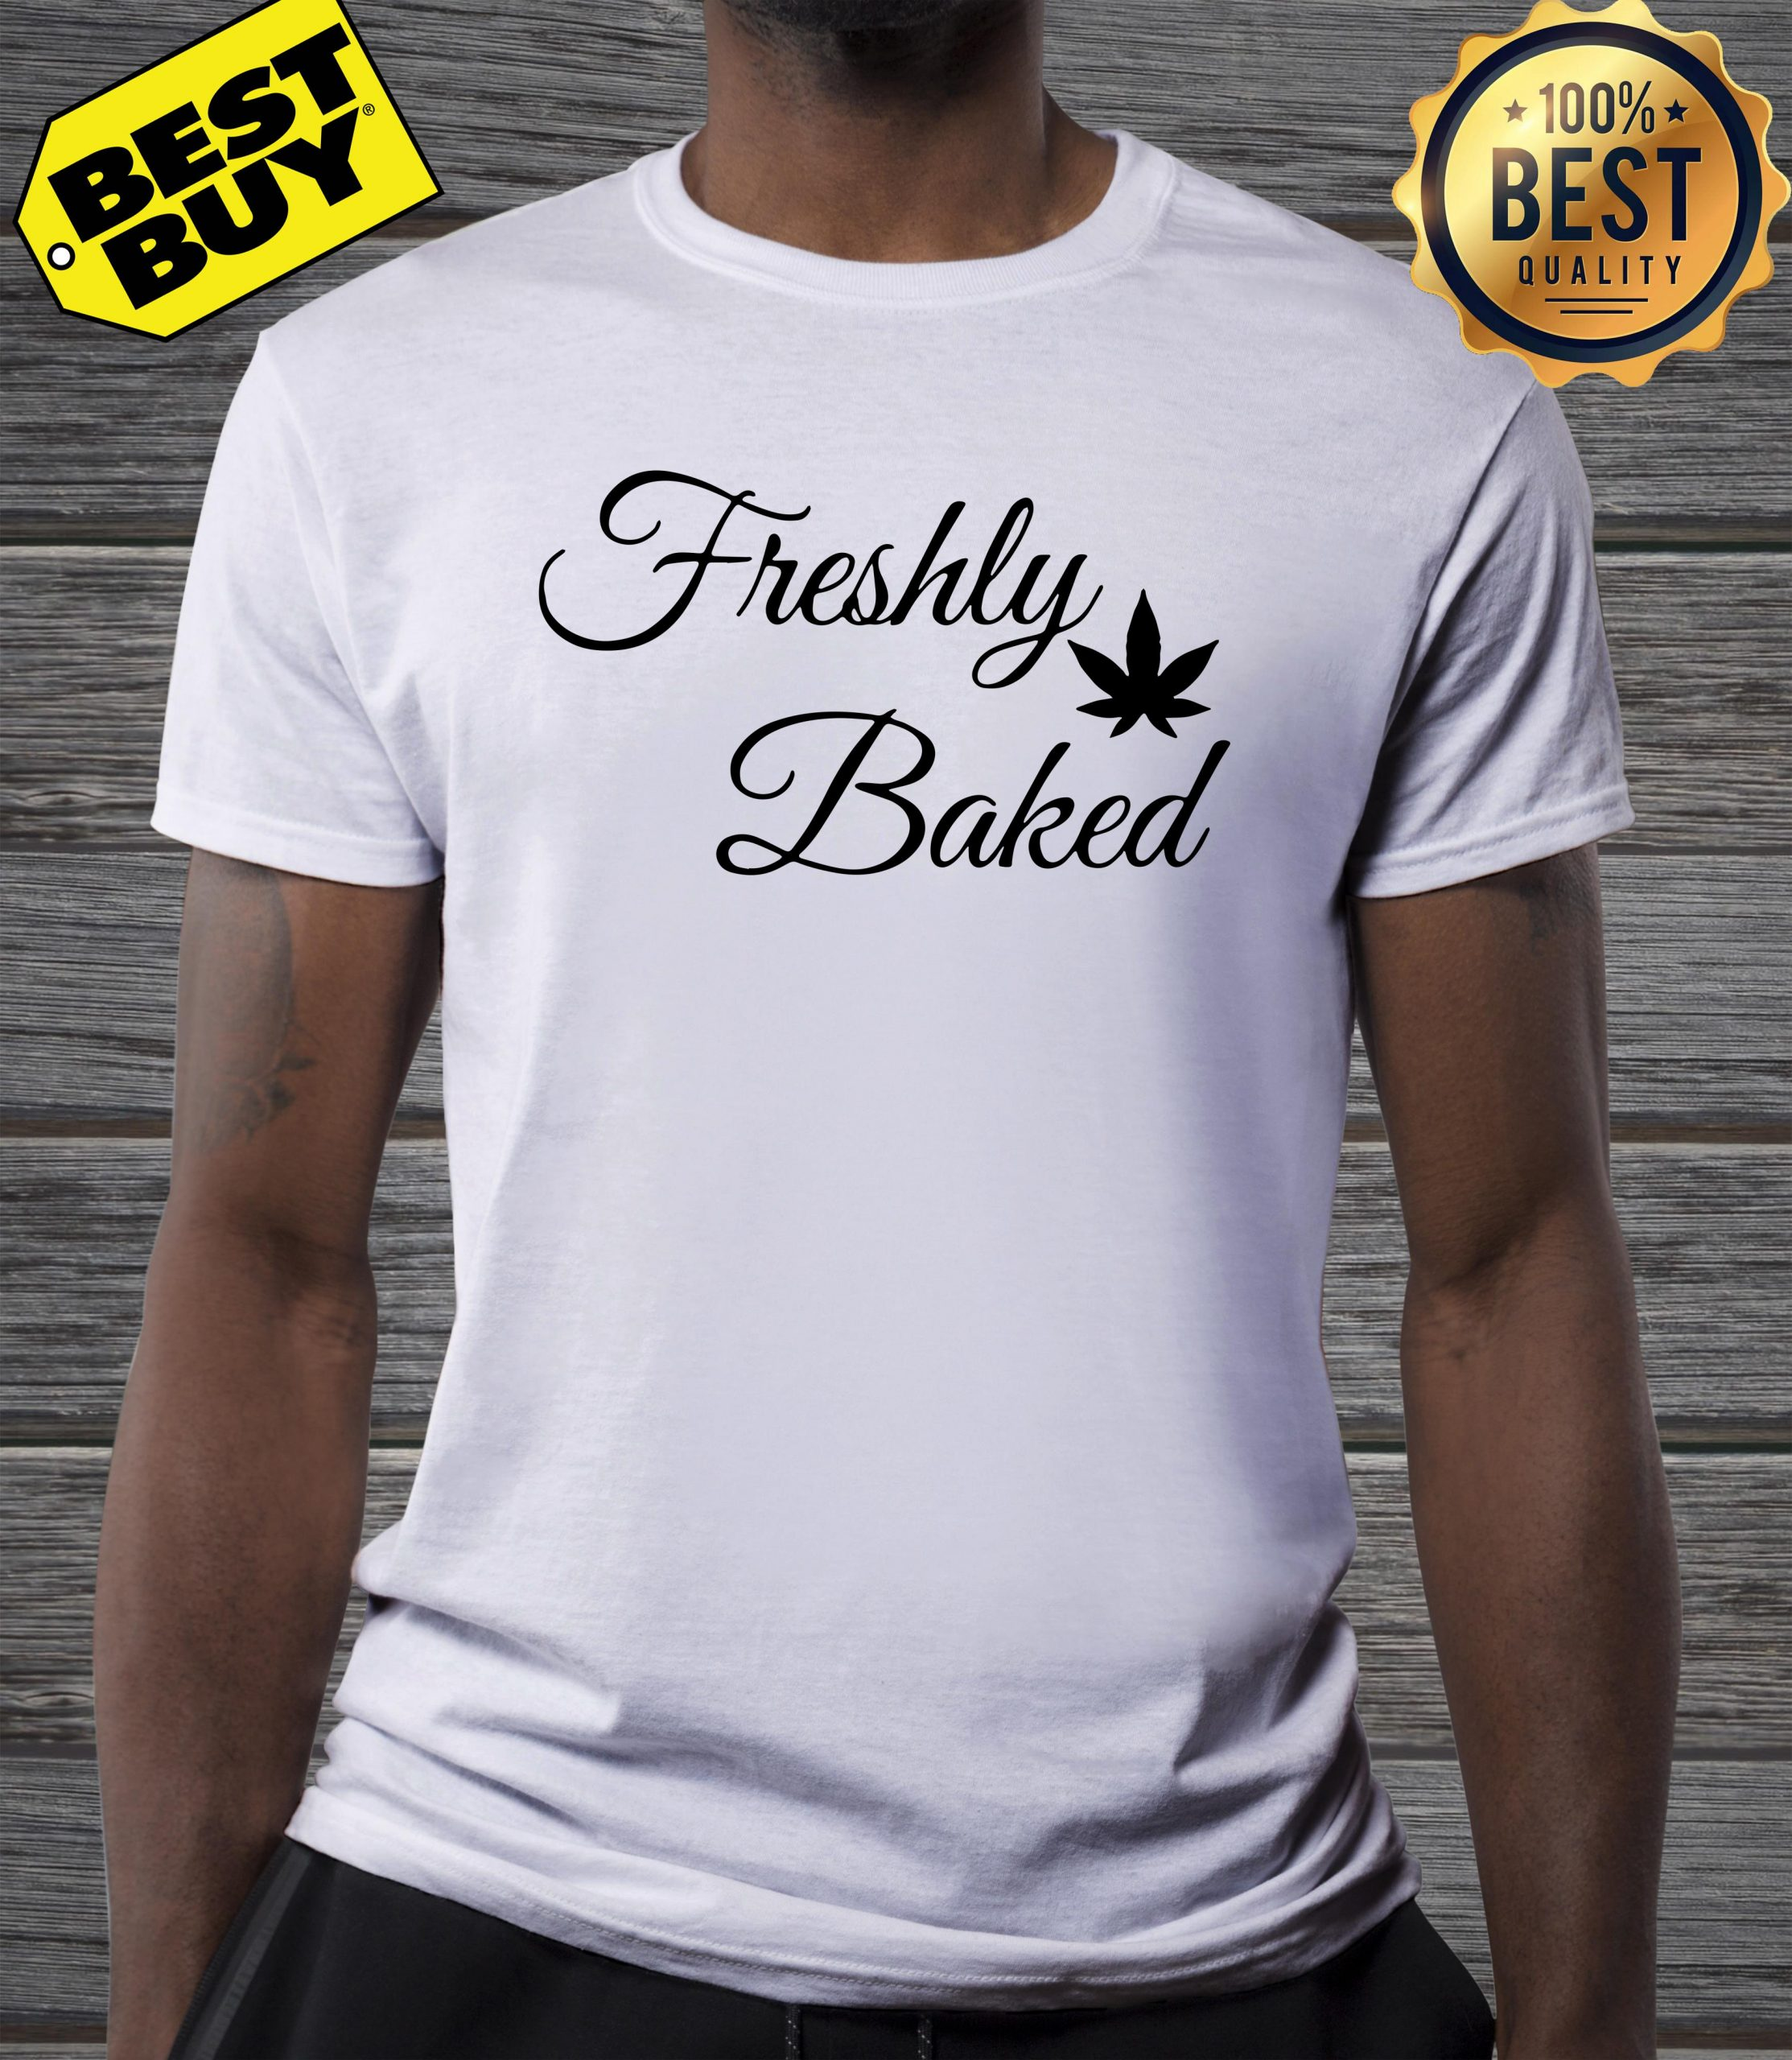 Official Freshly baked shirt